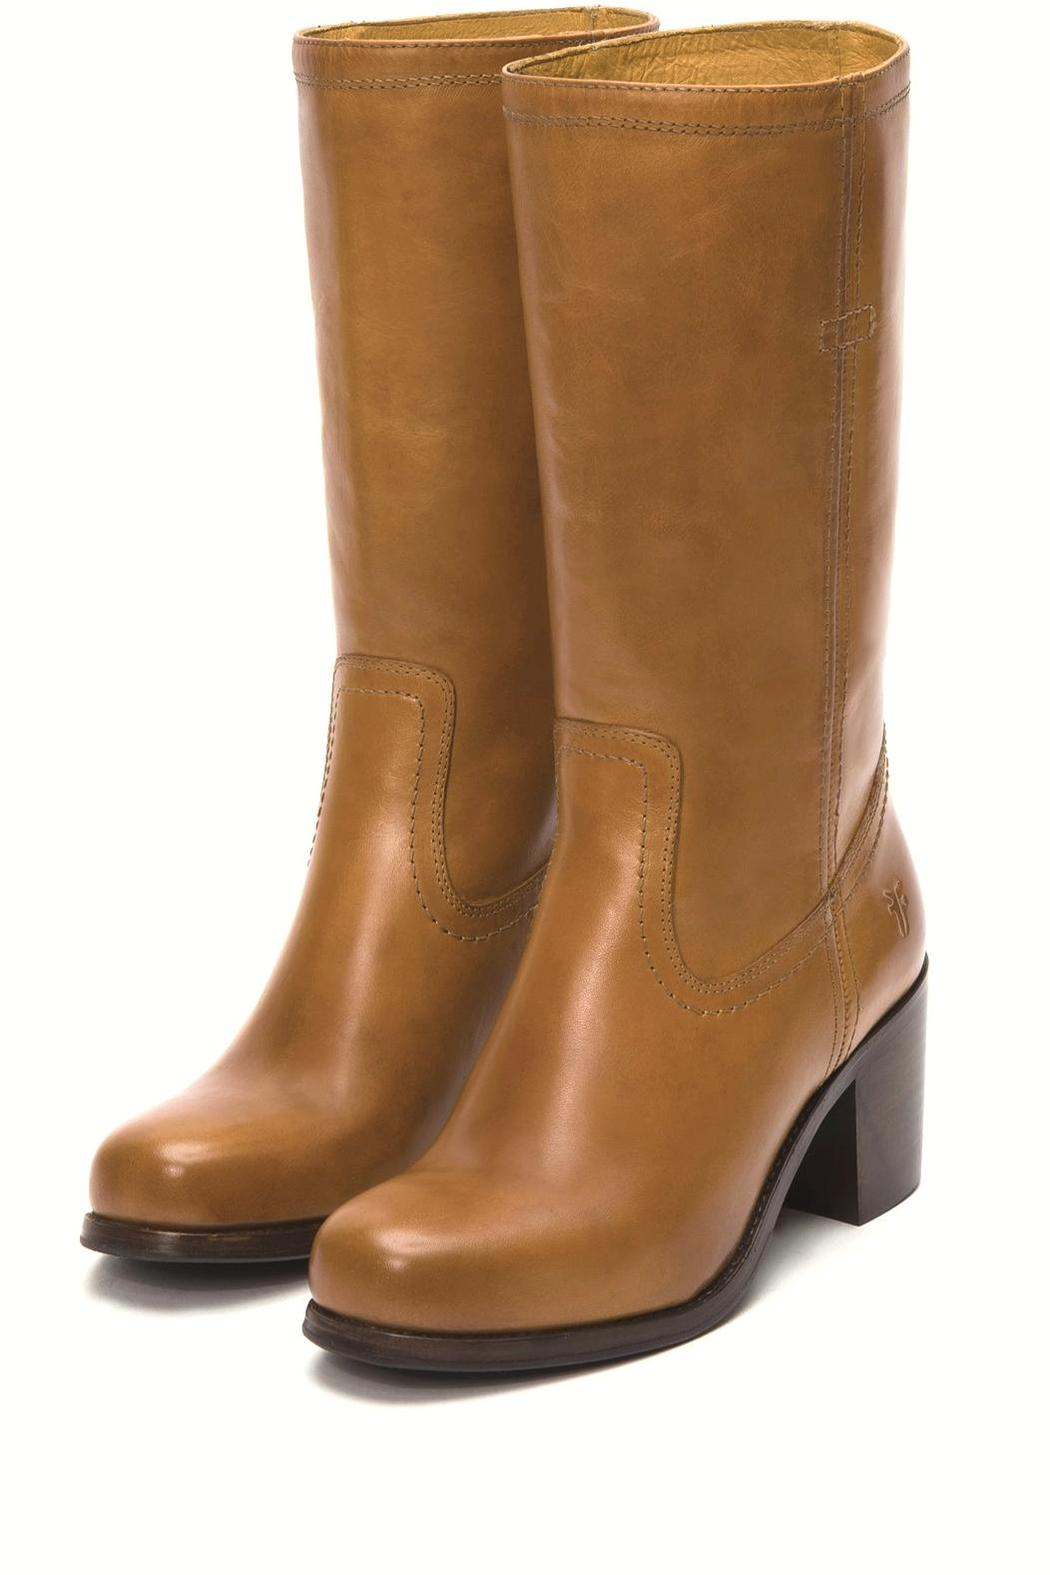 07488ee08408 Frye Kendall Pull On Boot from New York by Violet s of Saratoga ...